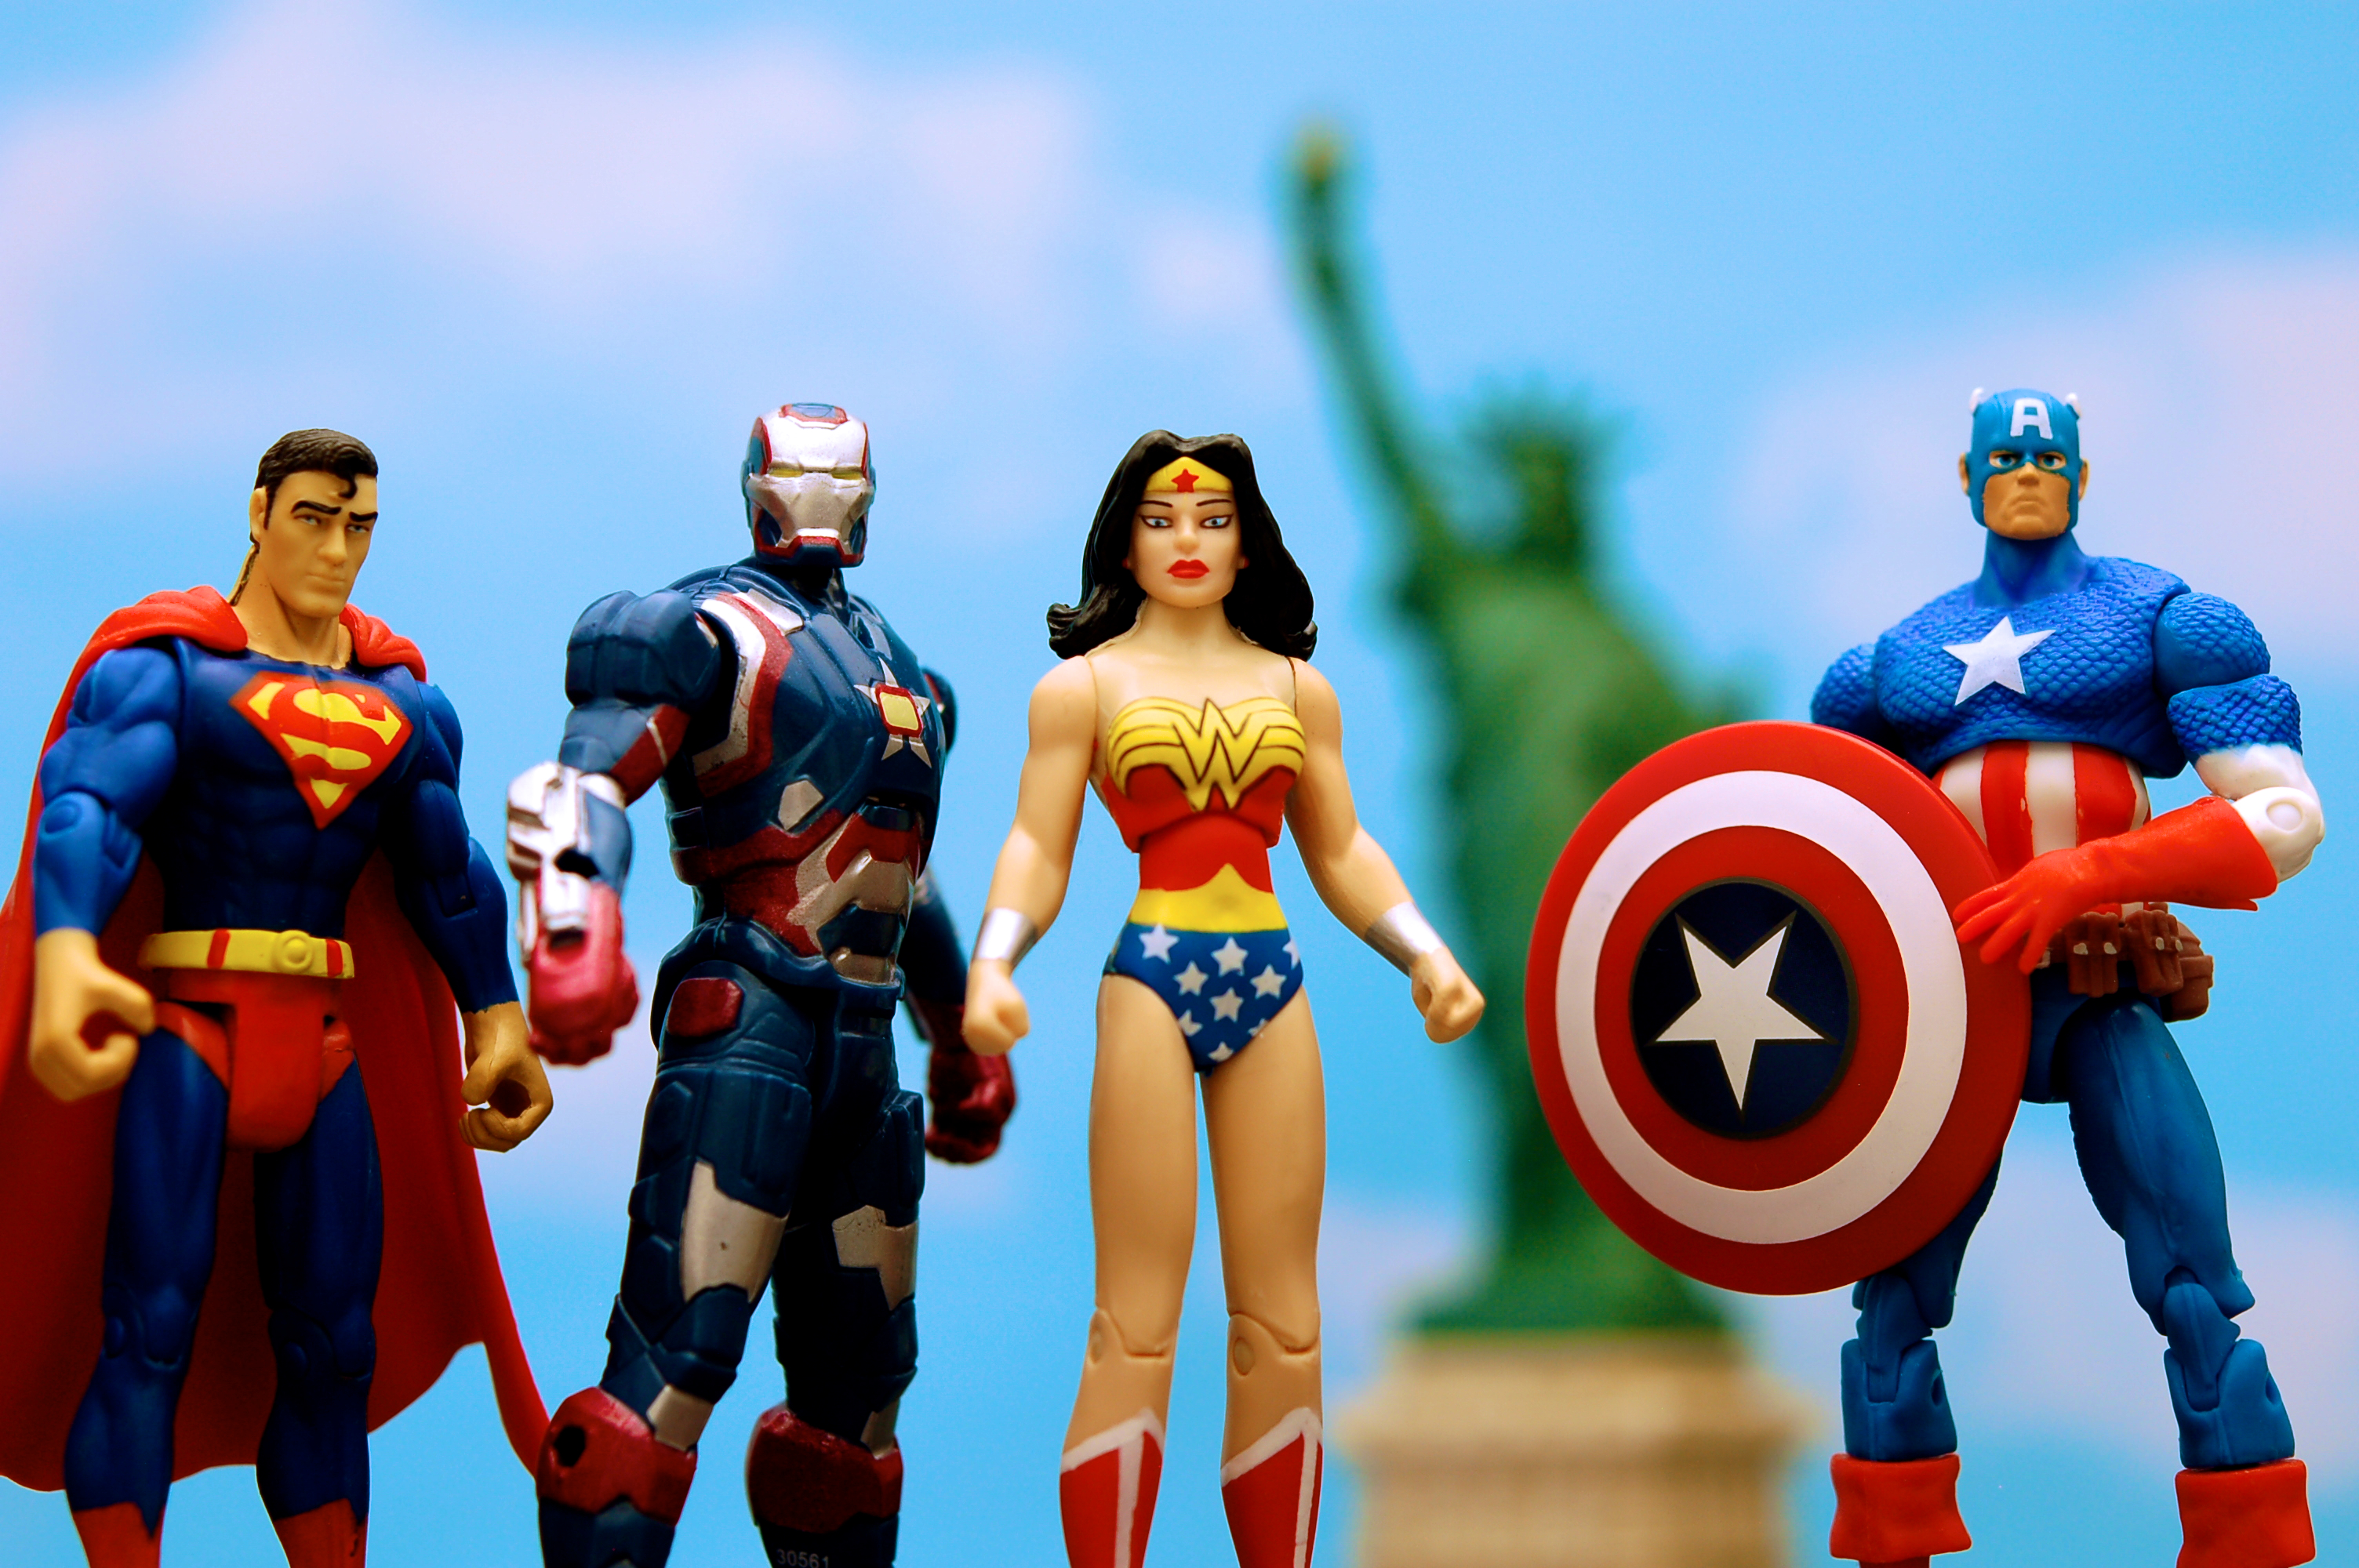 A number of superheroes